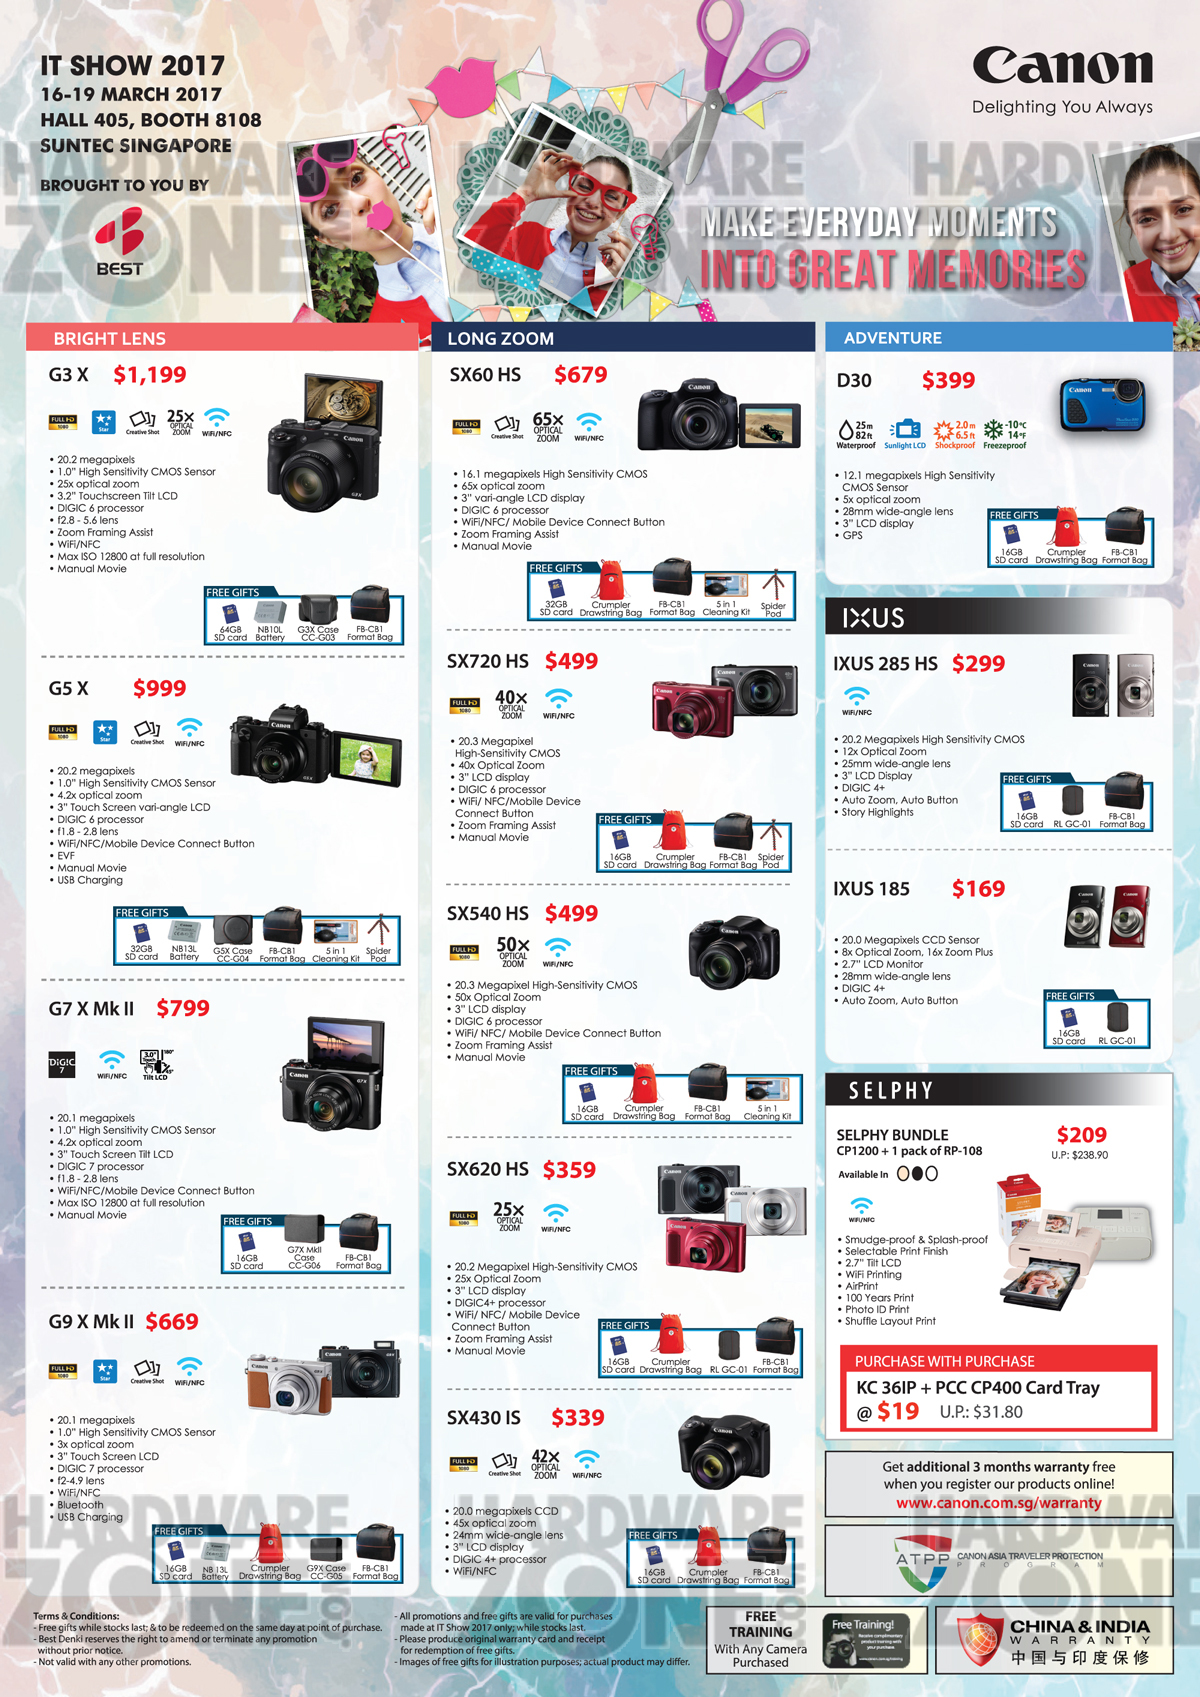 Canon cameras - page 1 Brochures from IT Show 2017 ...